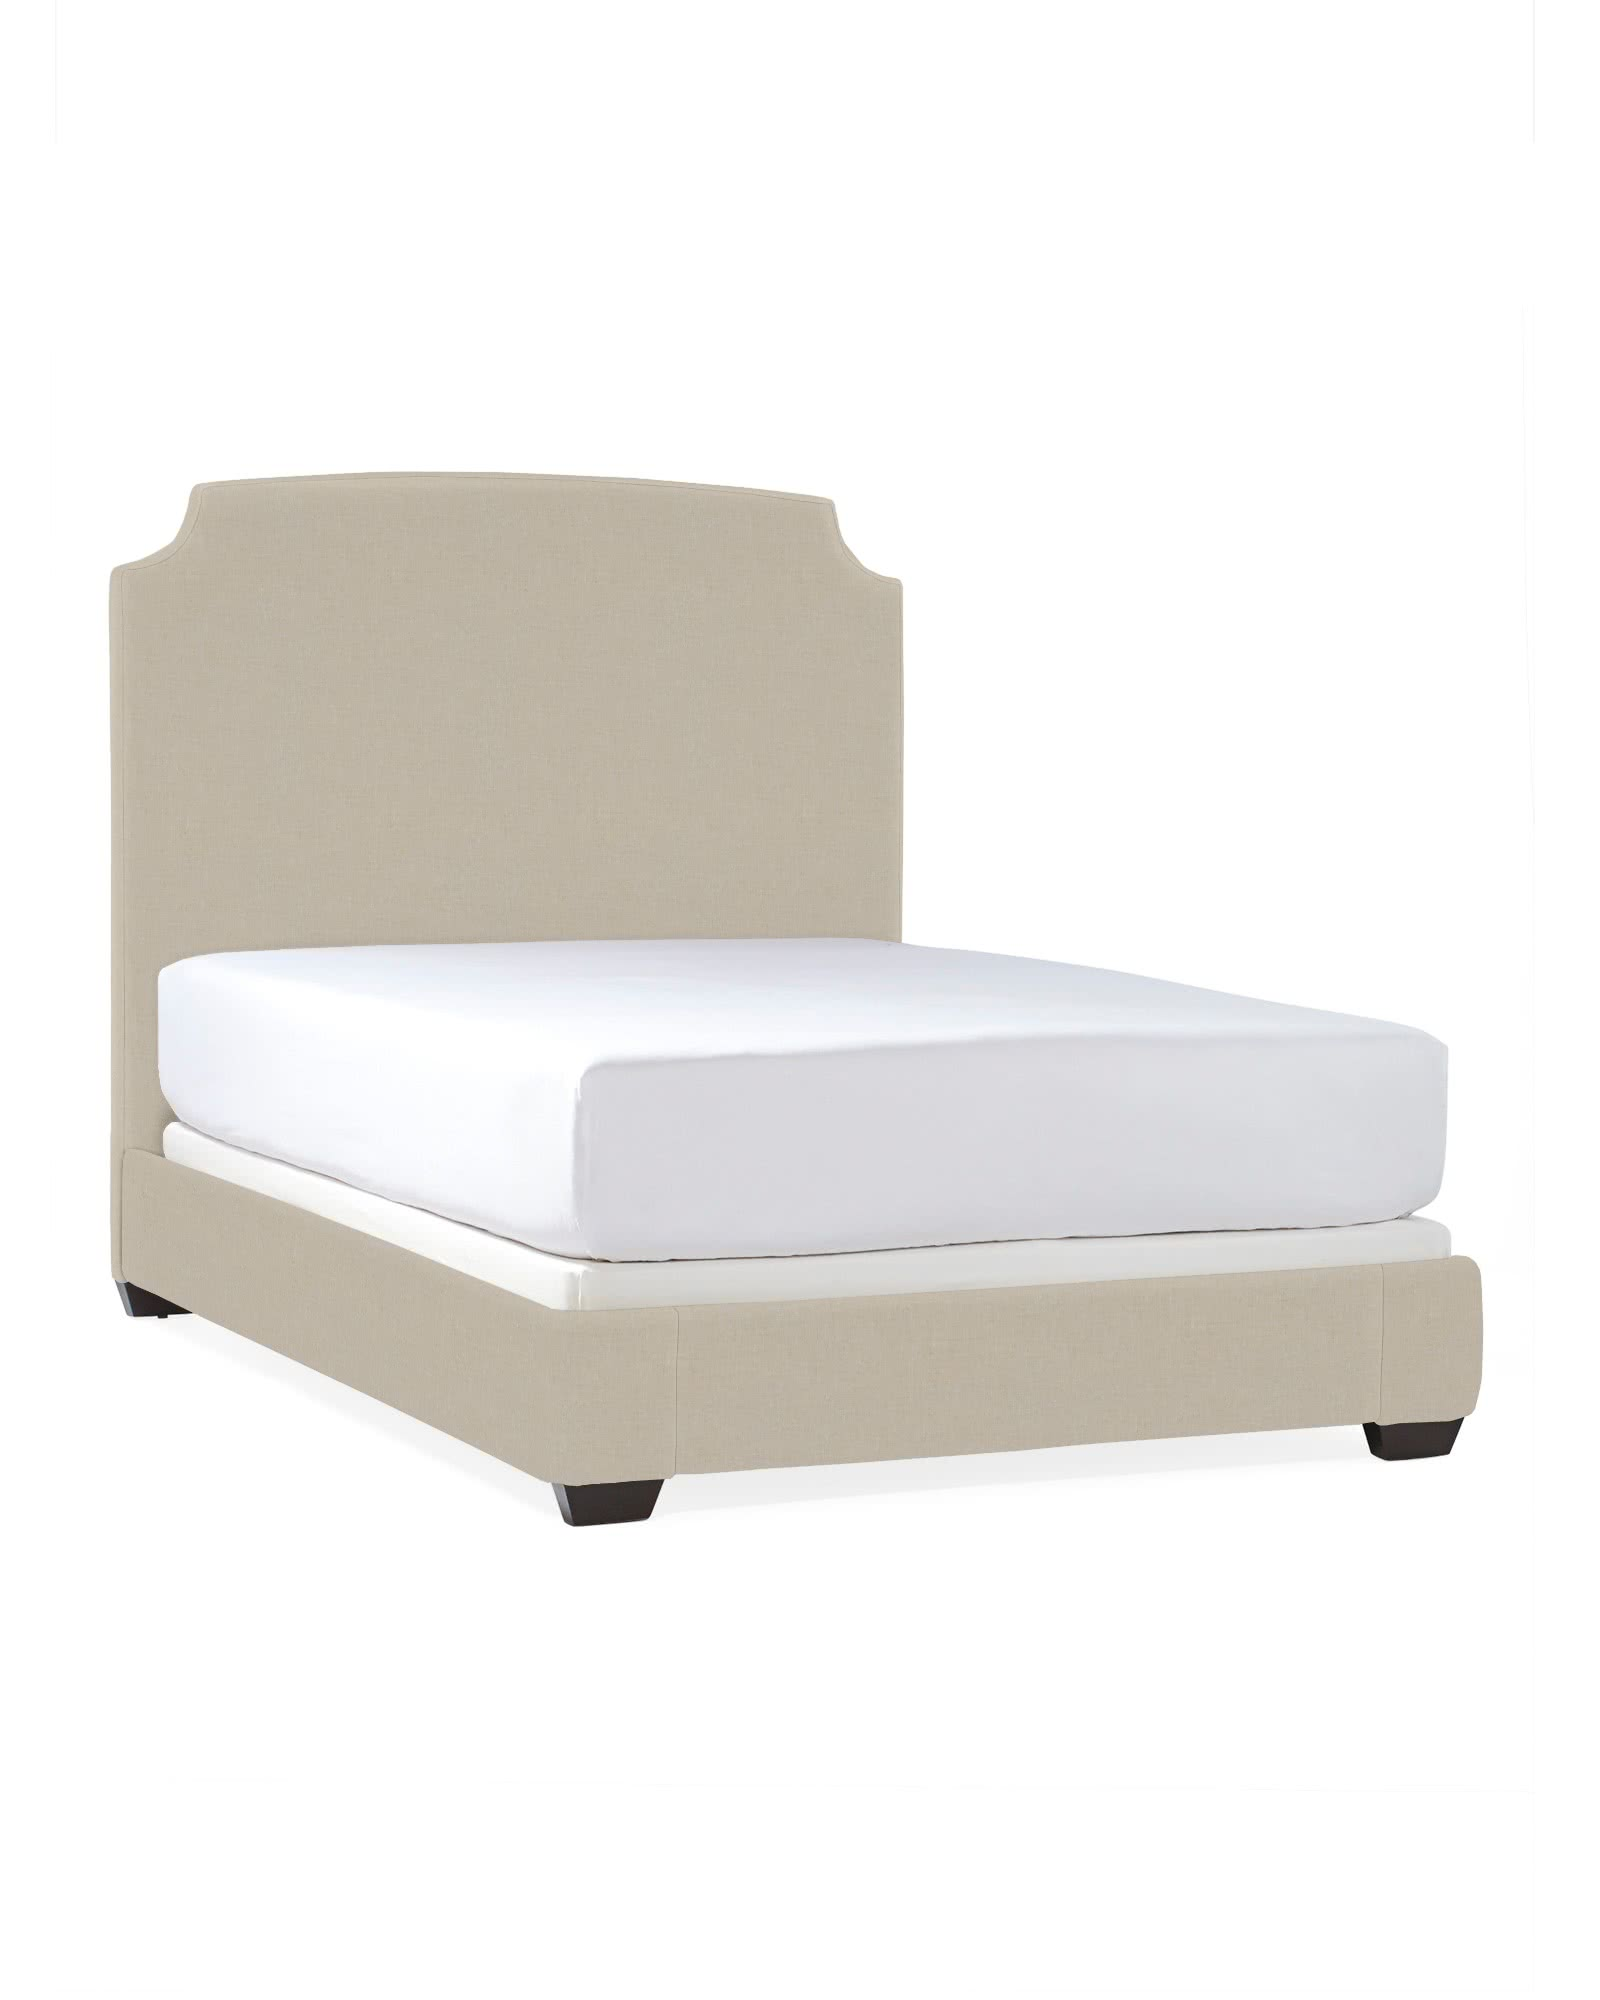 Fillmore Bed - Tall